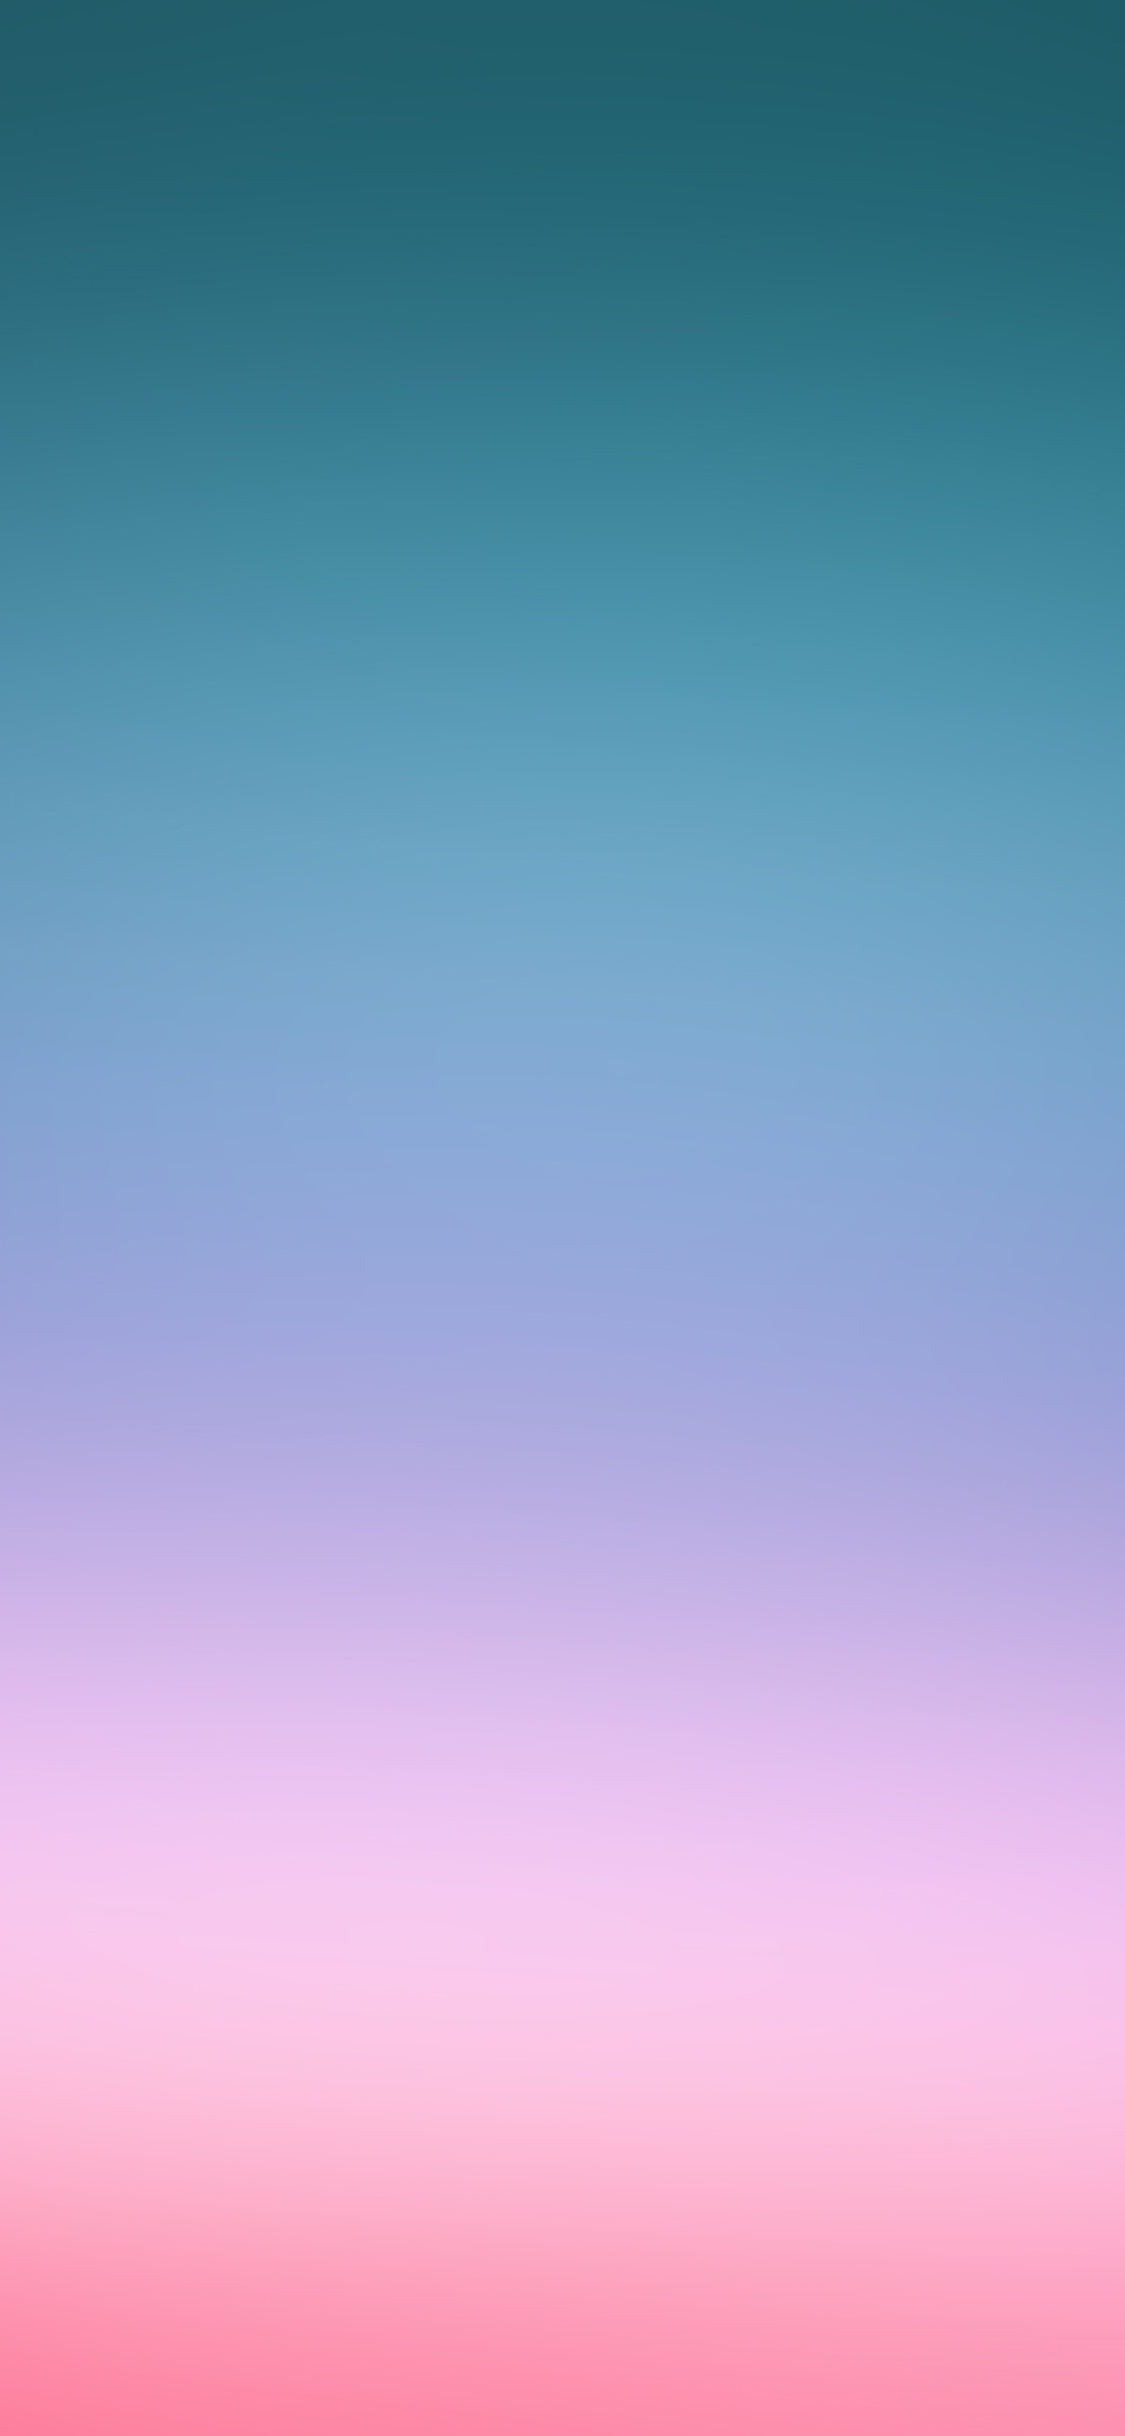 iPhoneXpapers.com-Apple-iPhone-wallpaper-sl34-pink-blue-soft-pastel-blur-gradation